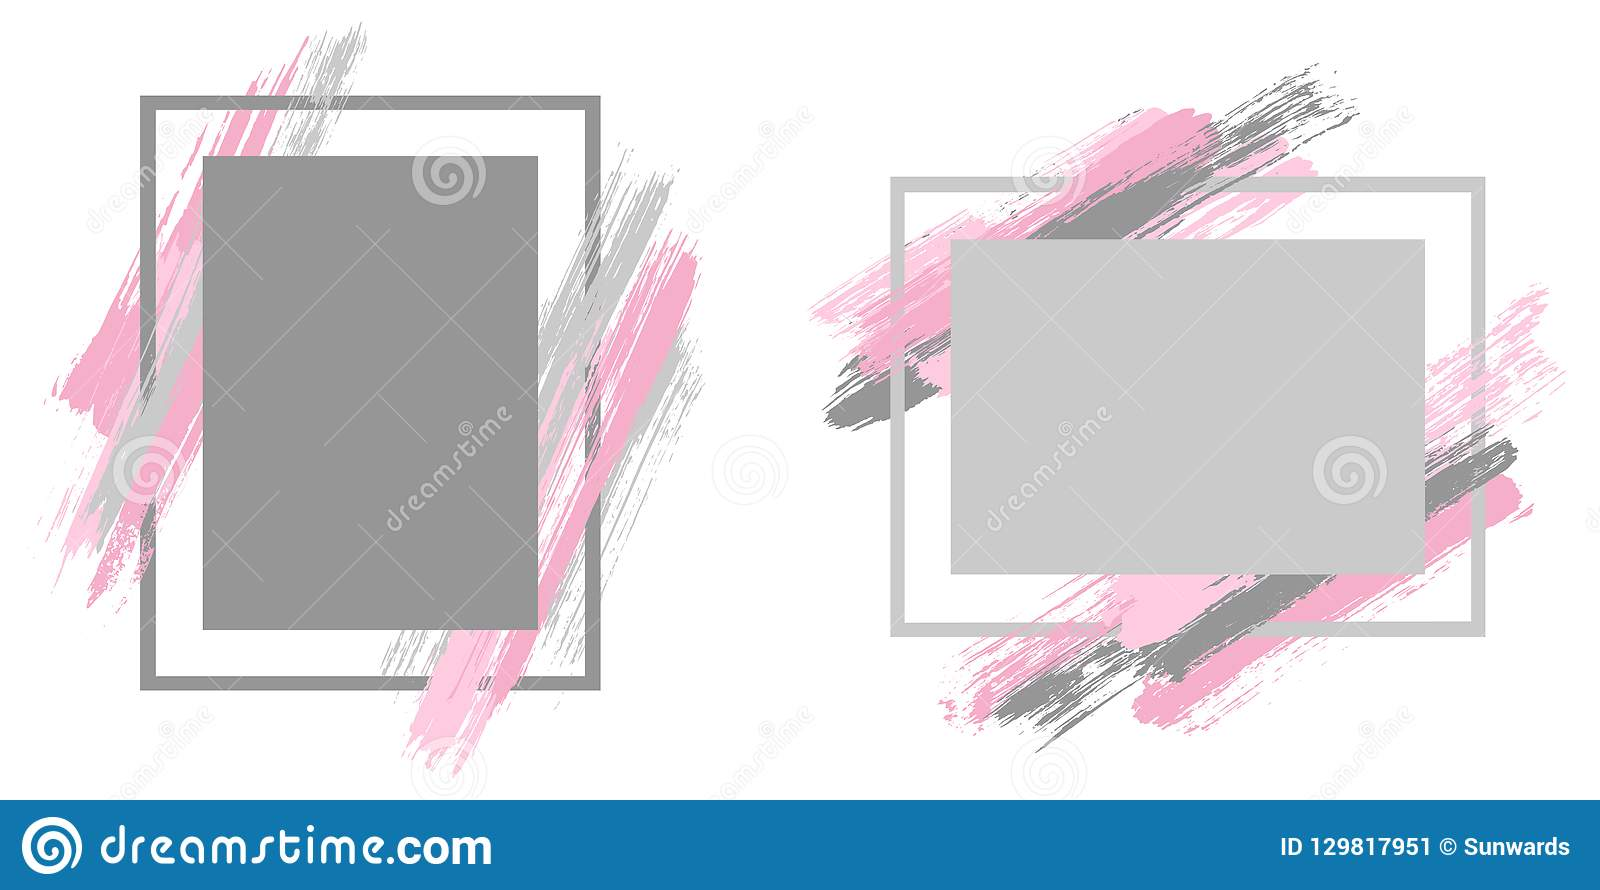 d3d24eedc84 Cool Frames With Paint Brush Strokes Vector Set. Stock Vector ...